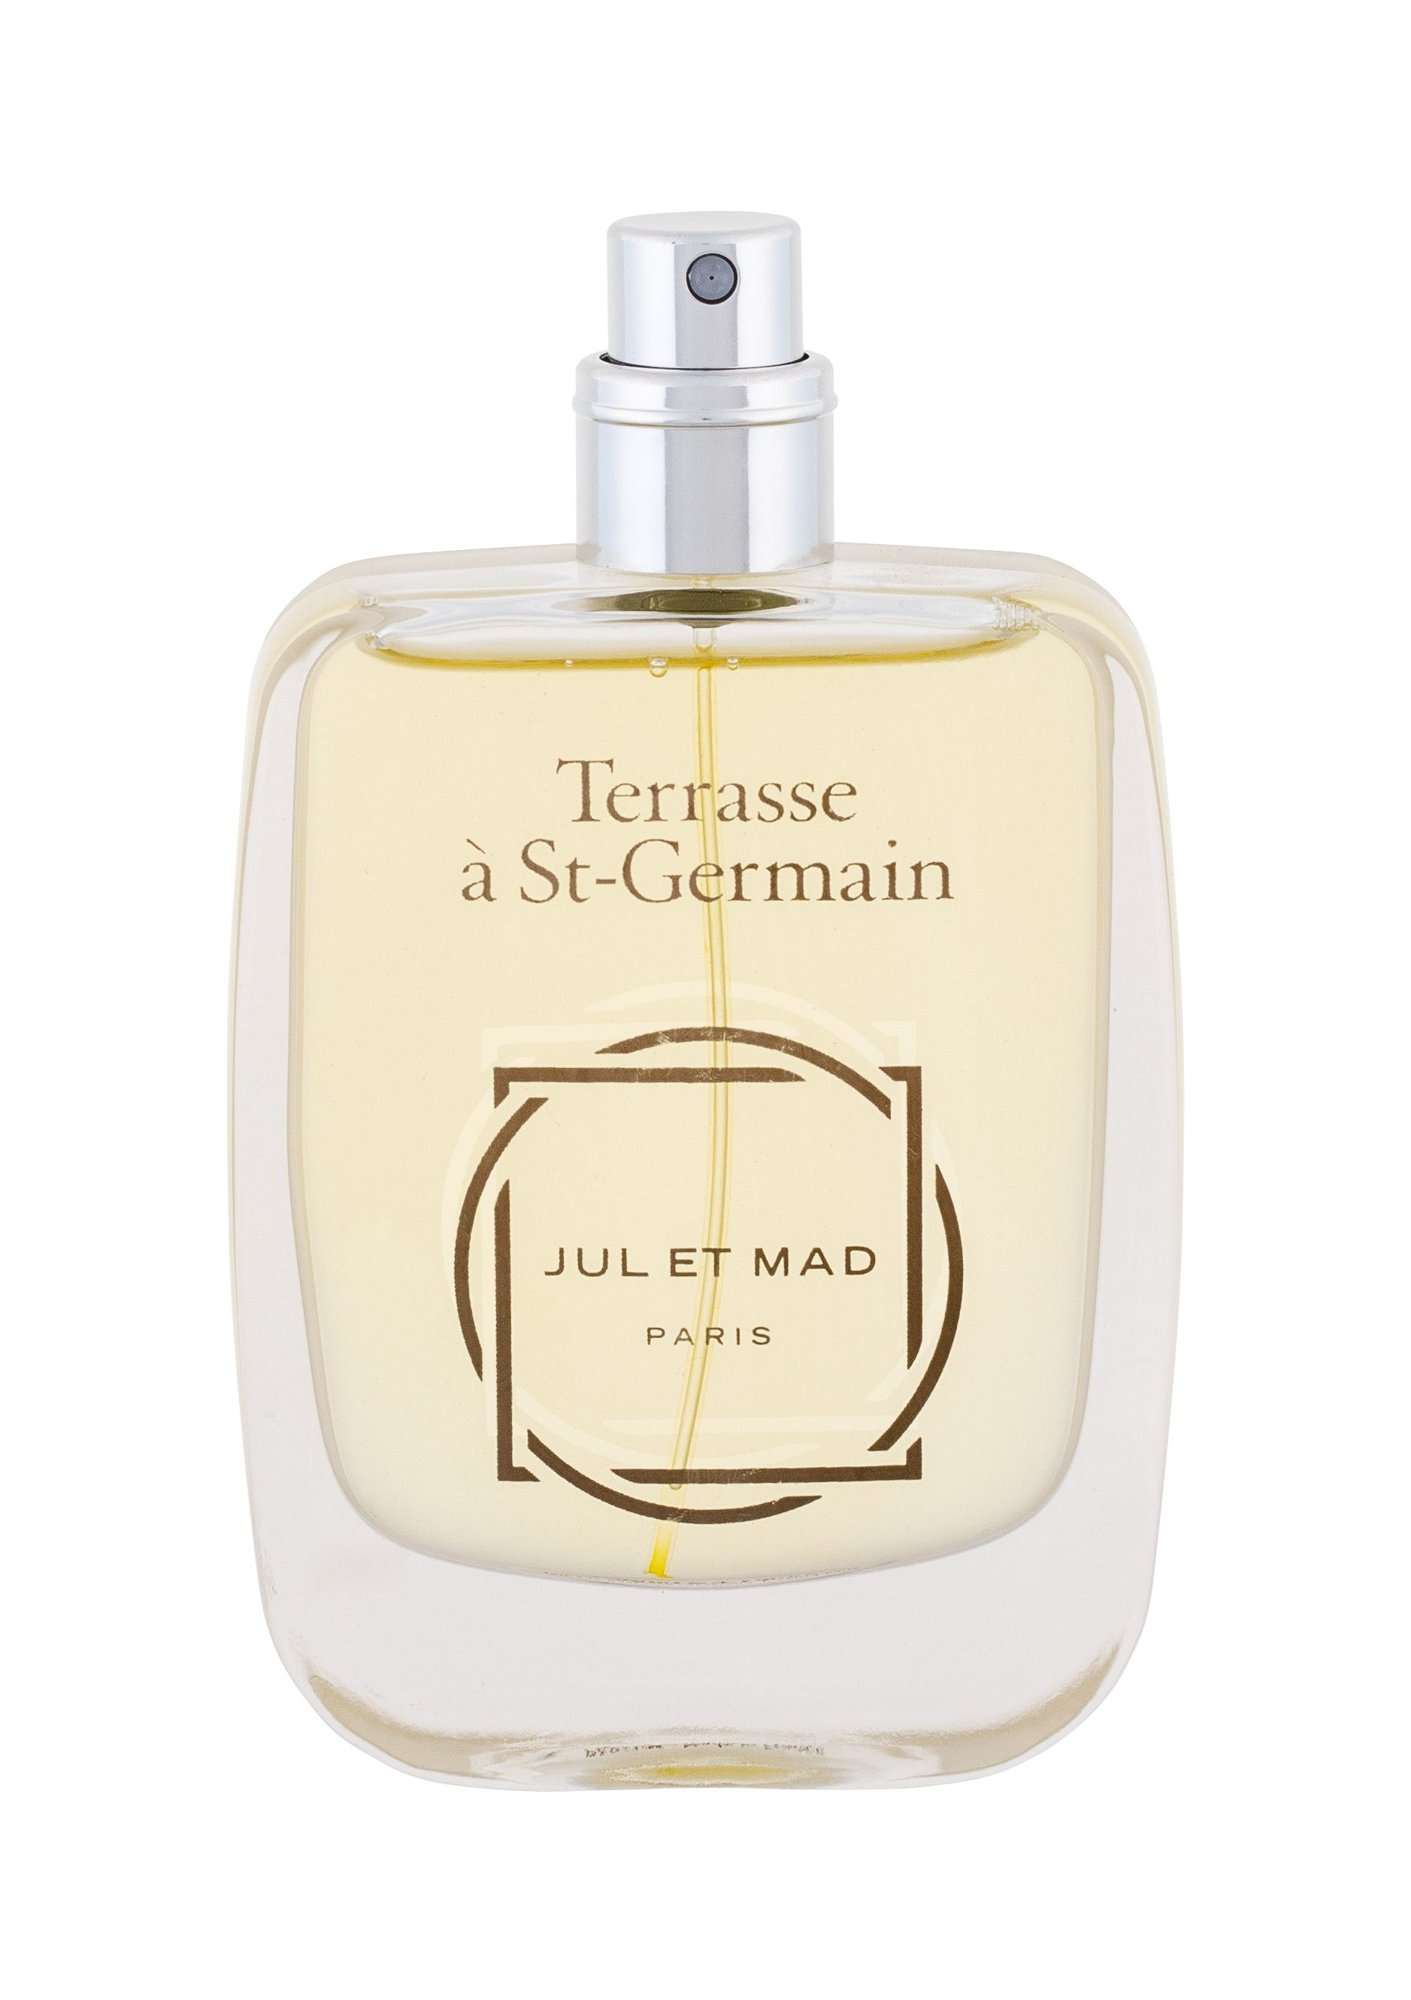 Jul et Mad Paris Terrasse a St-Germain Perfume 50ml